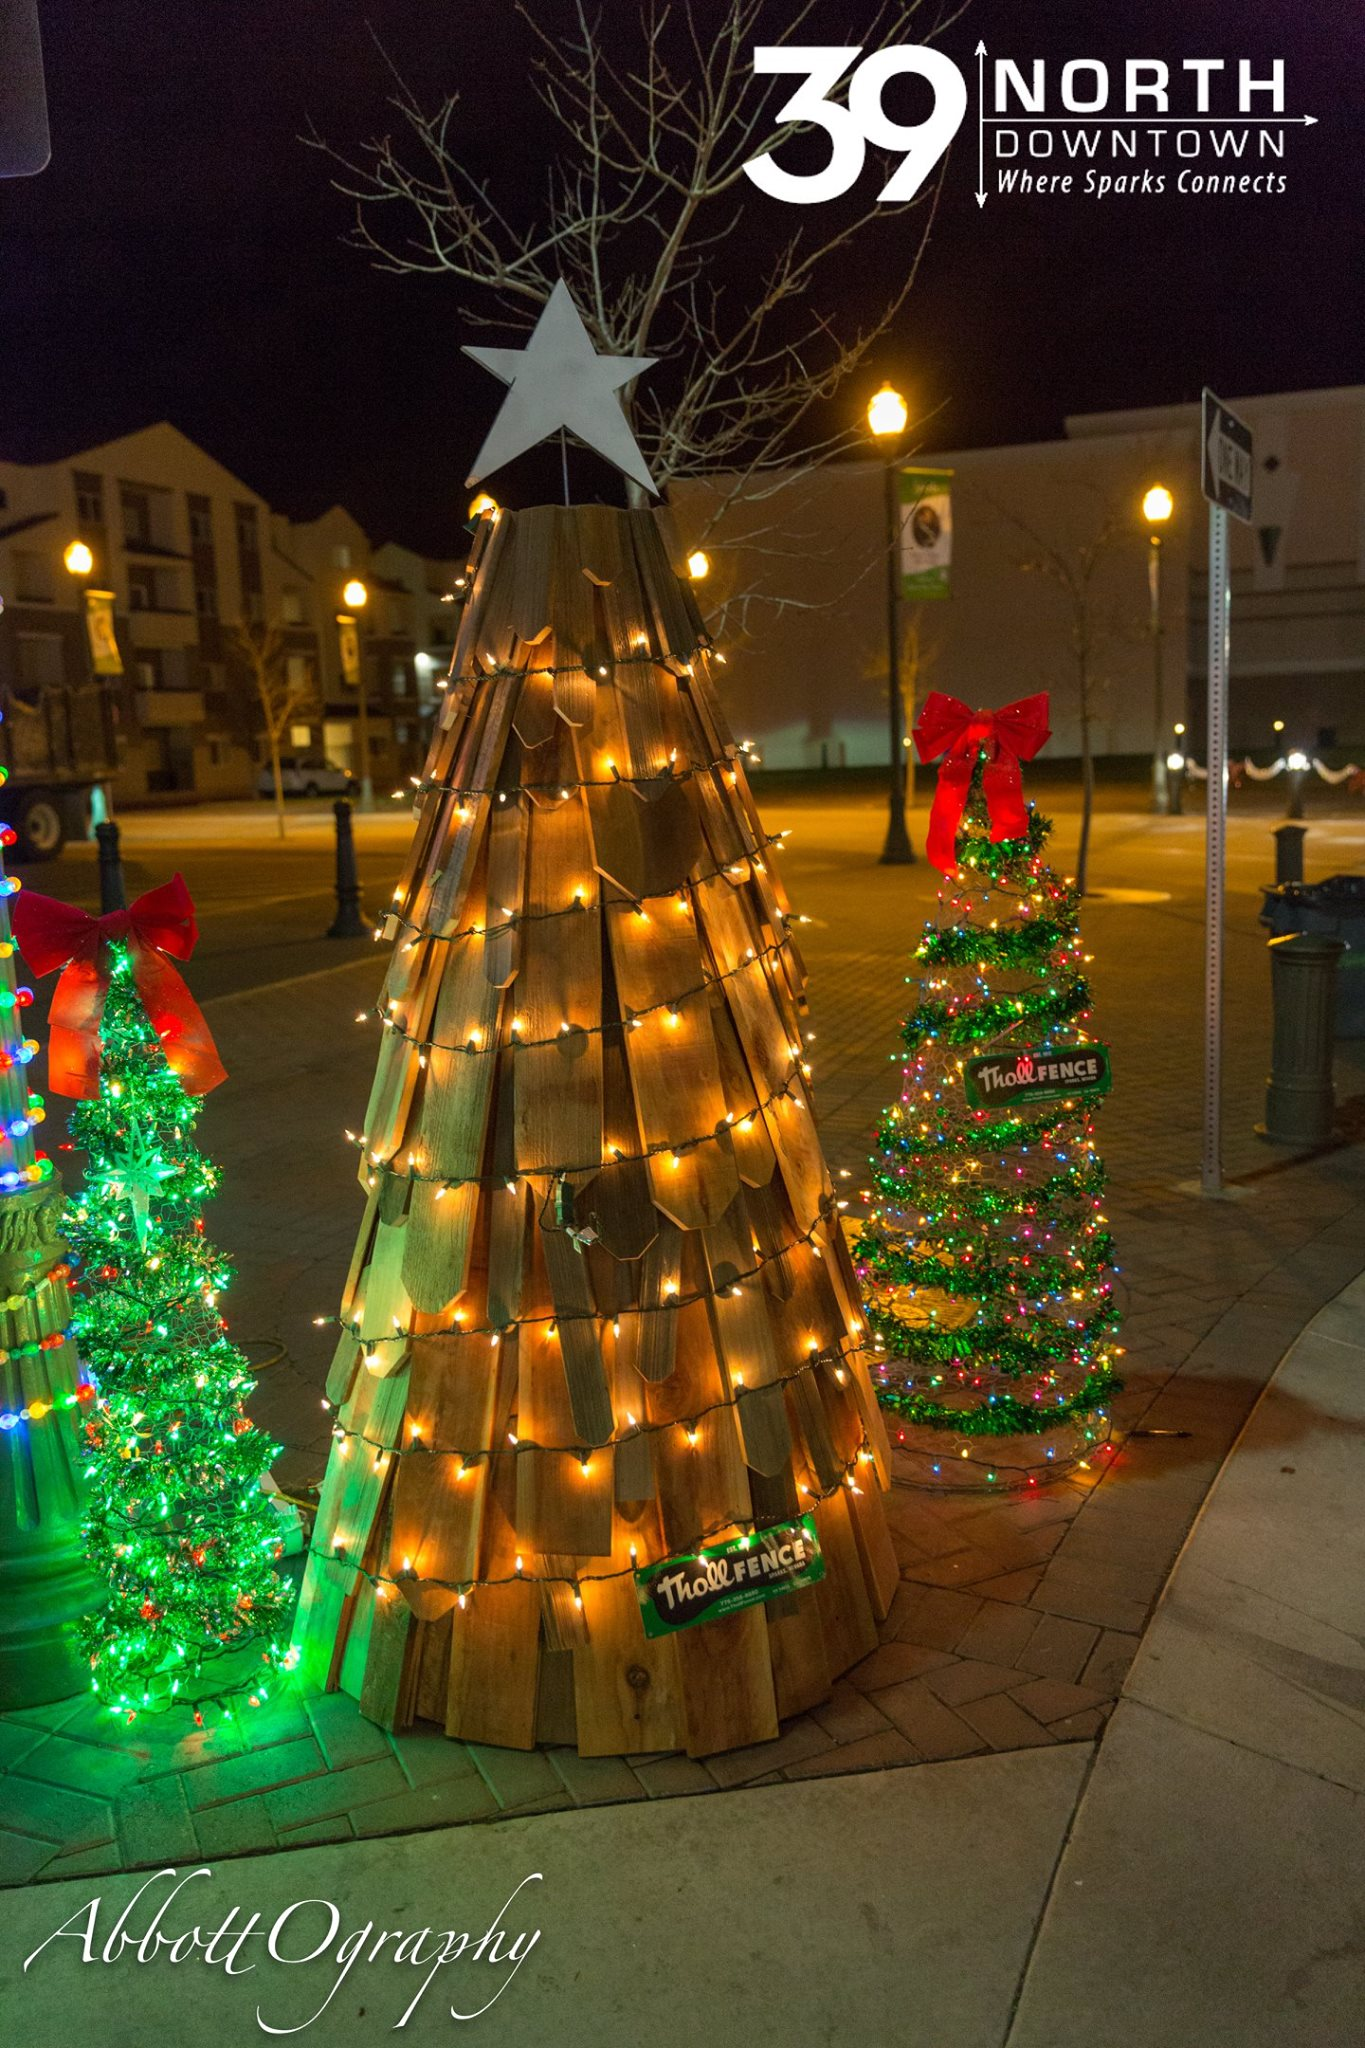 Griswold Christmas Lights.Registration Now Open For Griswold Challenge 39 North Downtown